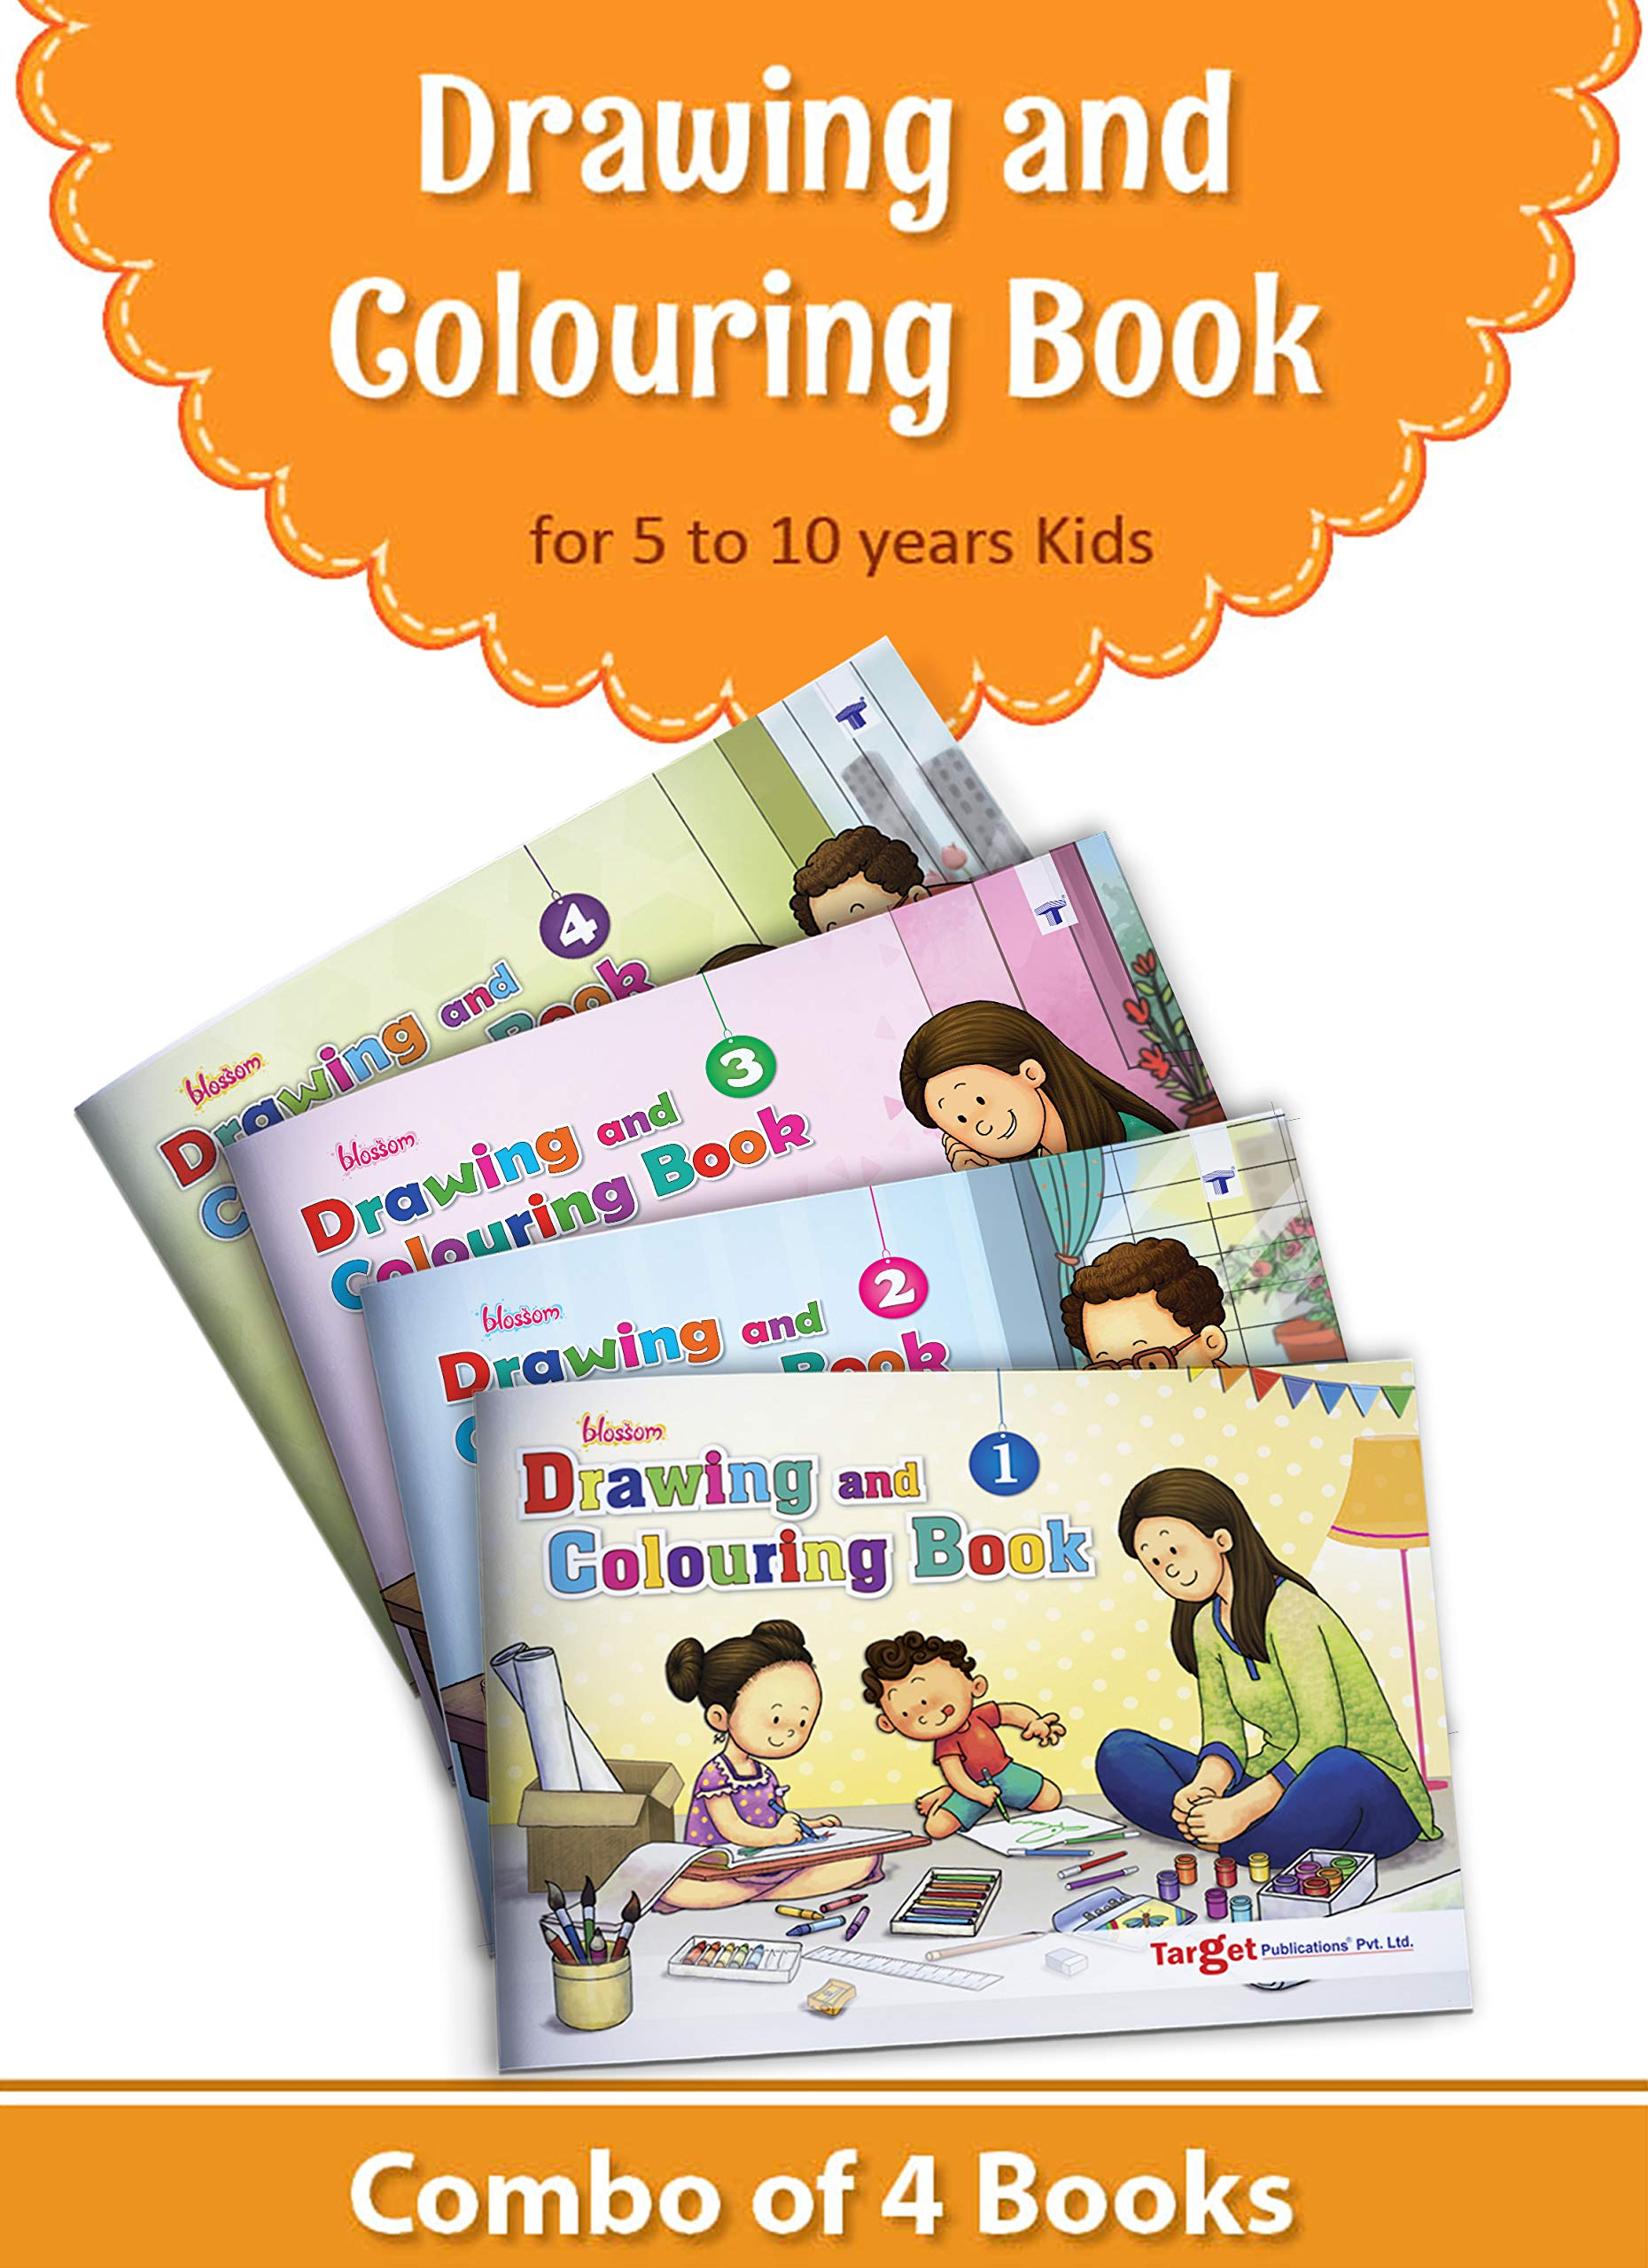 buy blossom drawing and colouring practice books for kids 5 to 10 years learn how to draw easily with step by step instructions pencil drawing techniques for children colouring practice books for kids